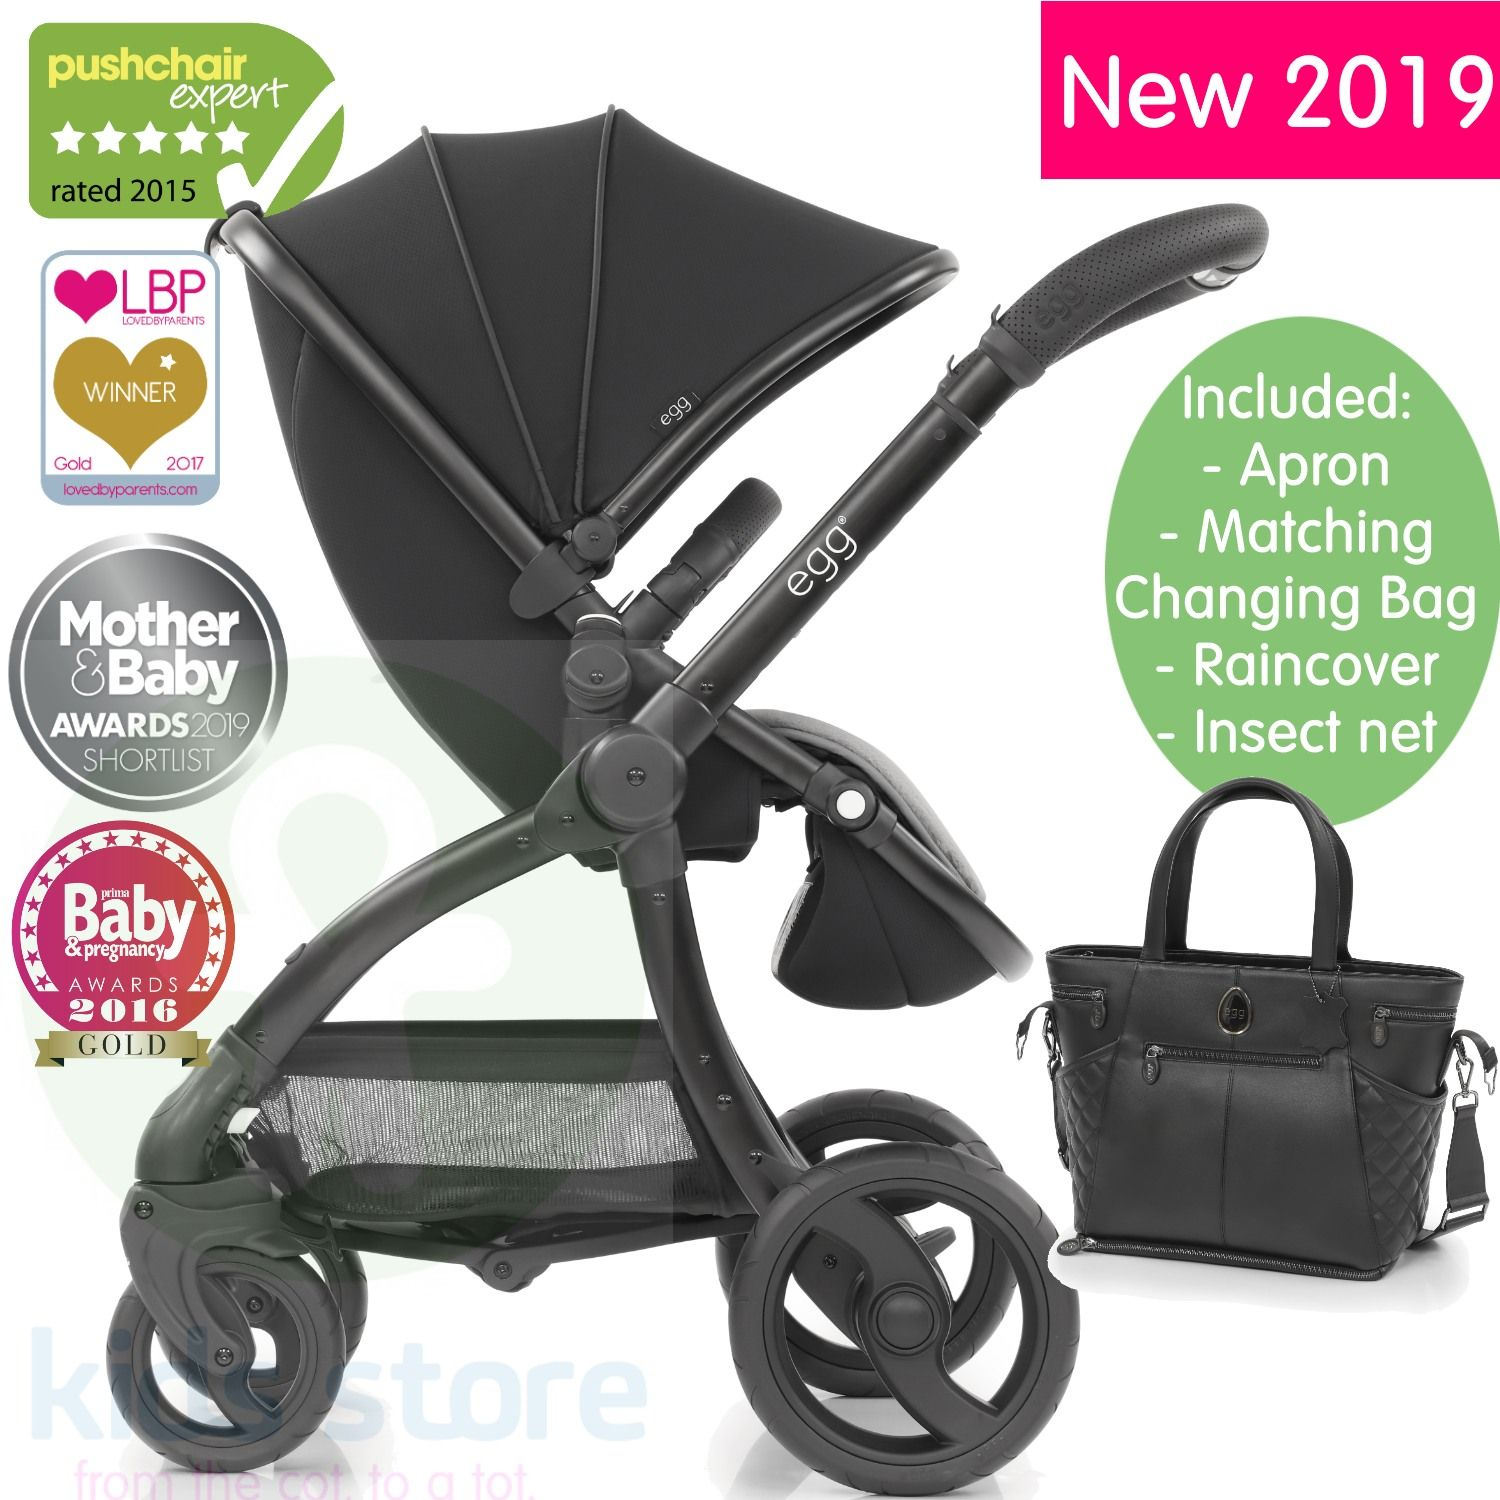 Egg Pram Gunmetal Egg Just Black Special Edition Stroller With Matching